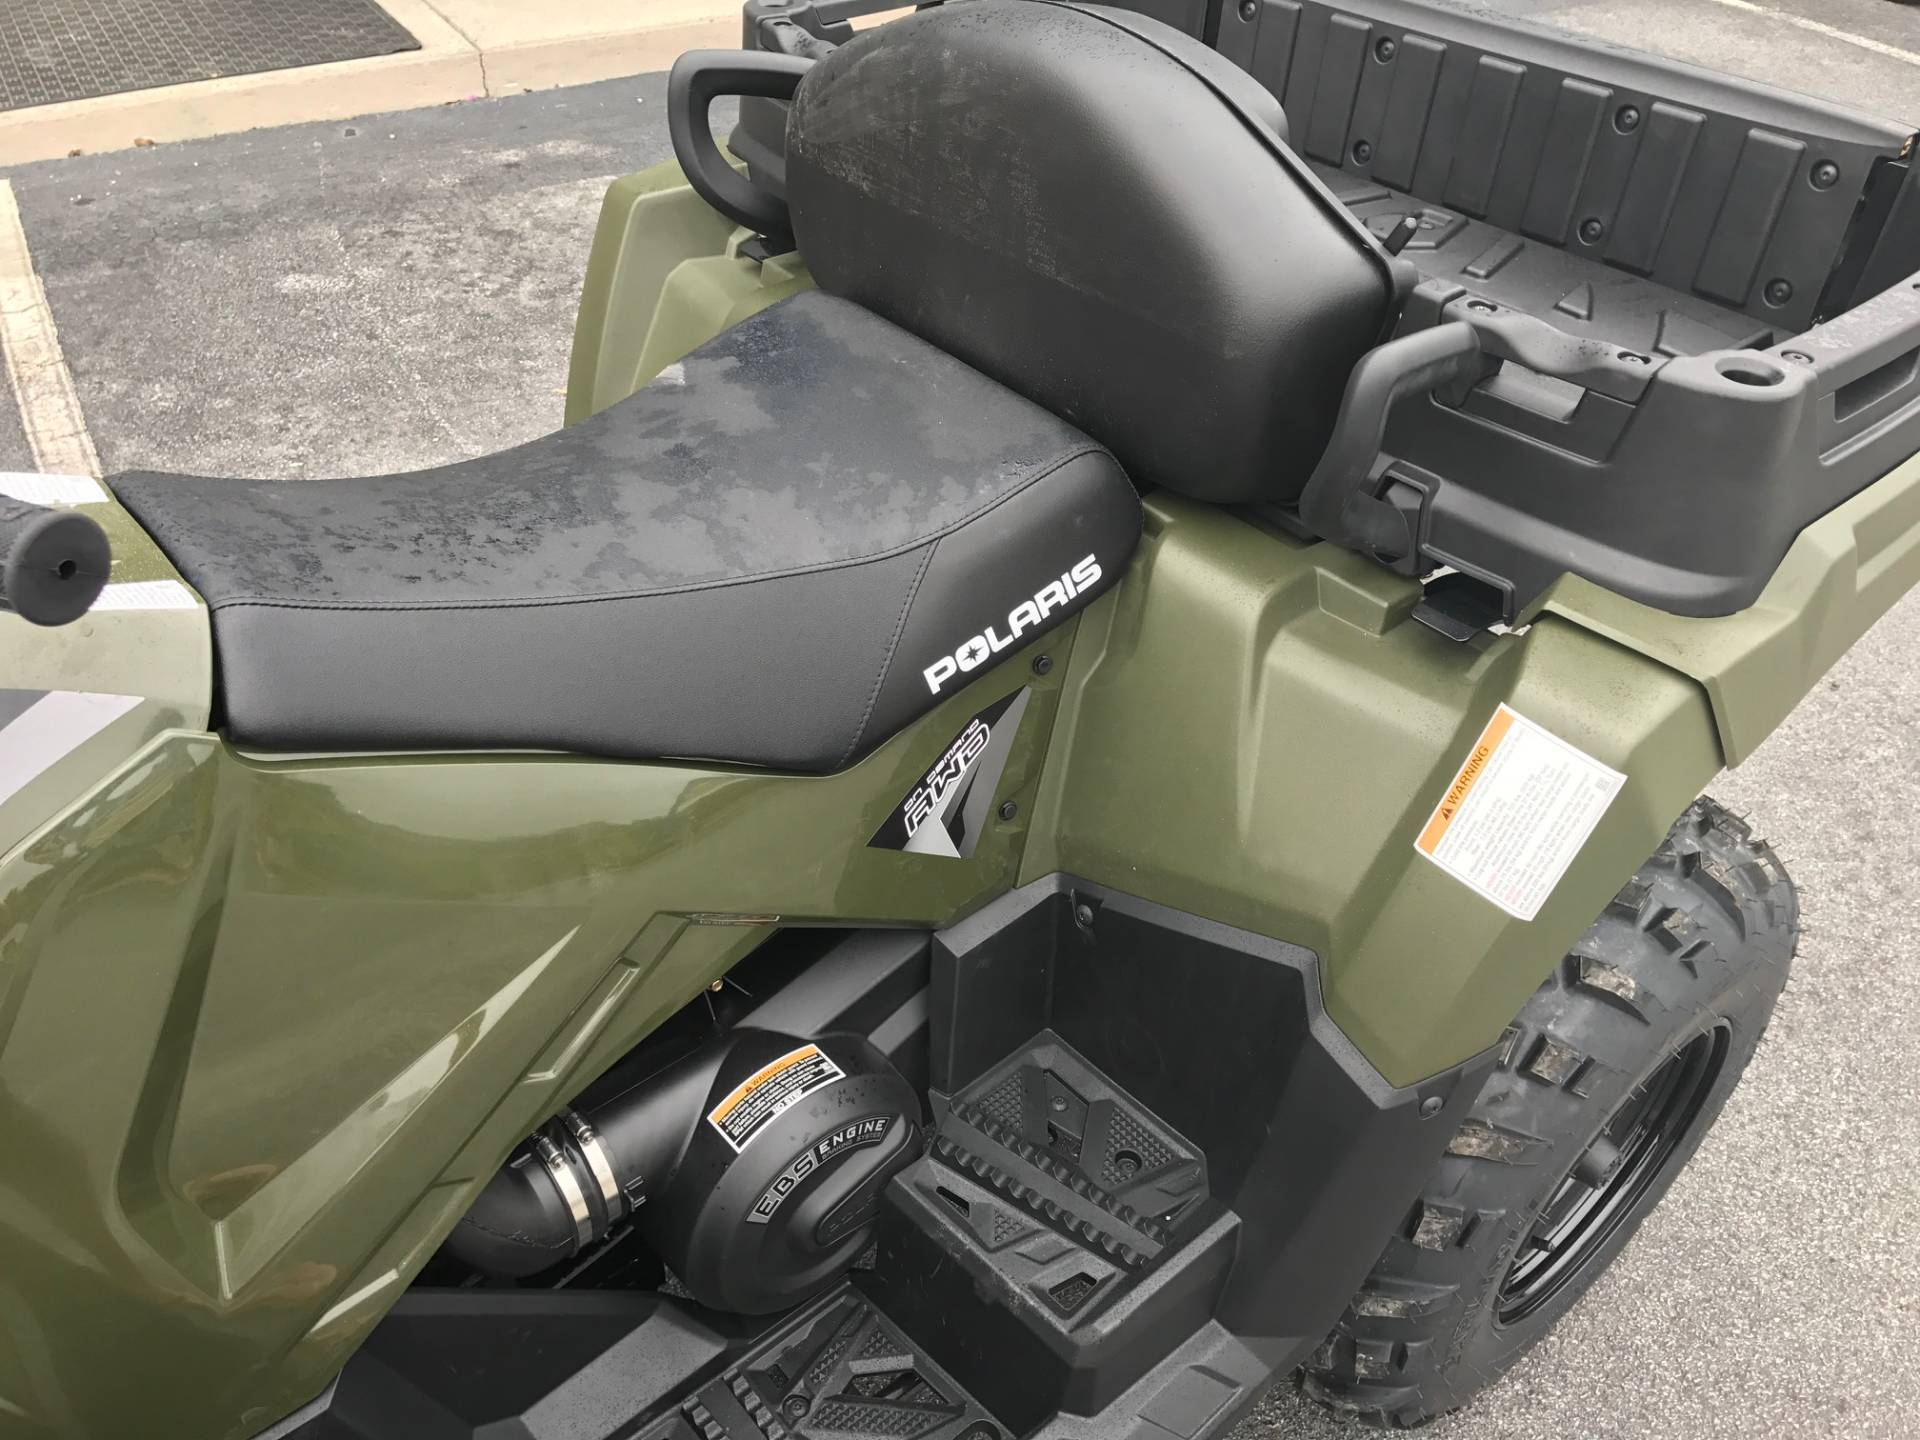 2017 polaris sportsman x2 570 eps atvs greenville north carolina 2017 polaris sportsman x2 570 eps in greenville north carolina publicscrutiny